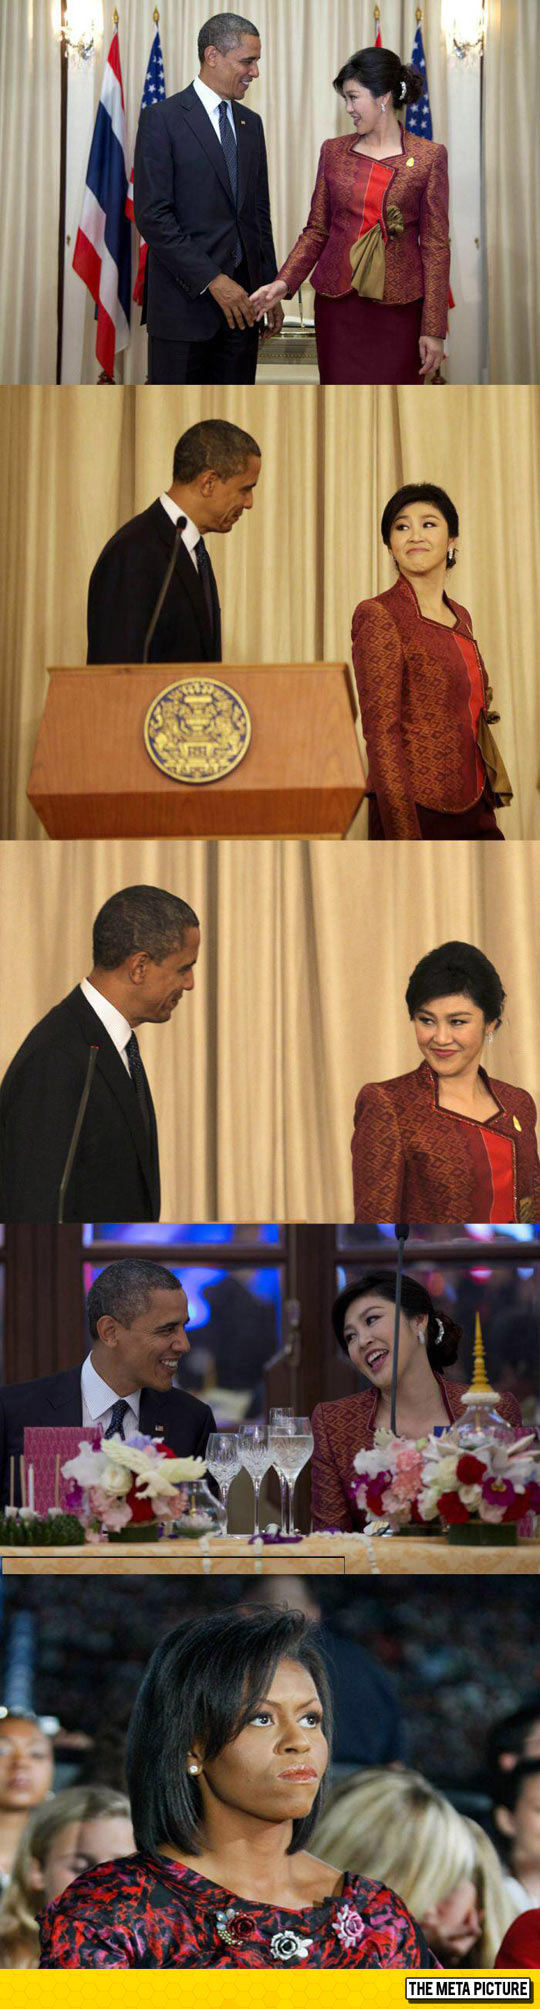 Obama And The Prime Minister Of Thailand